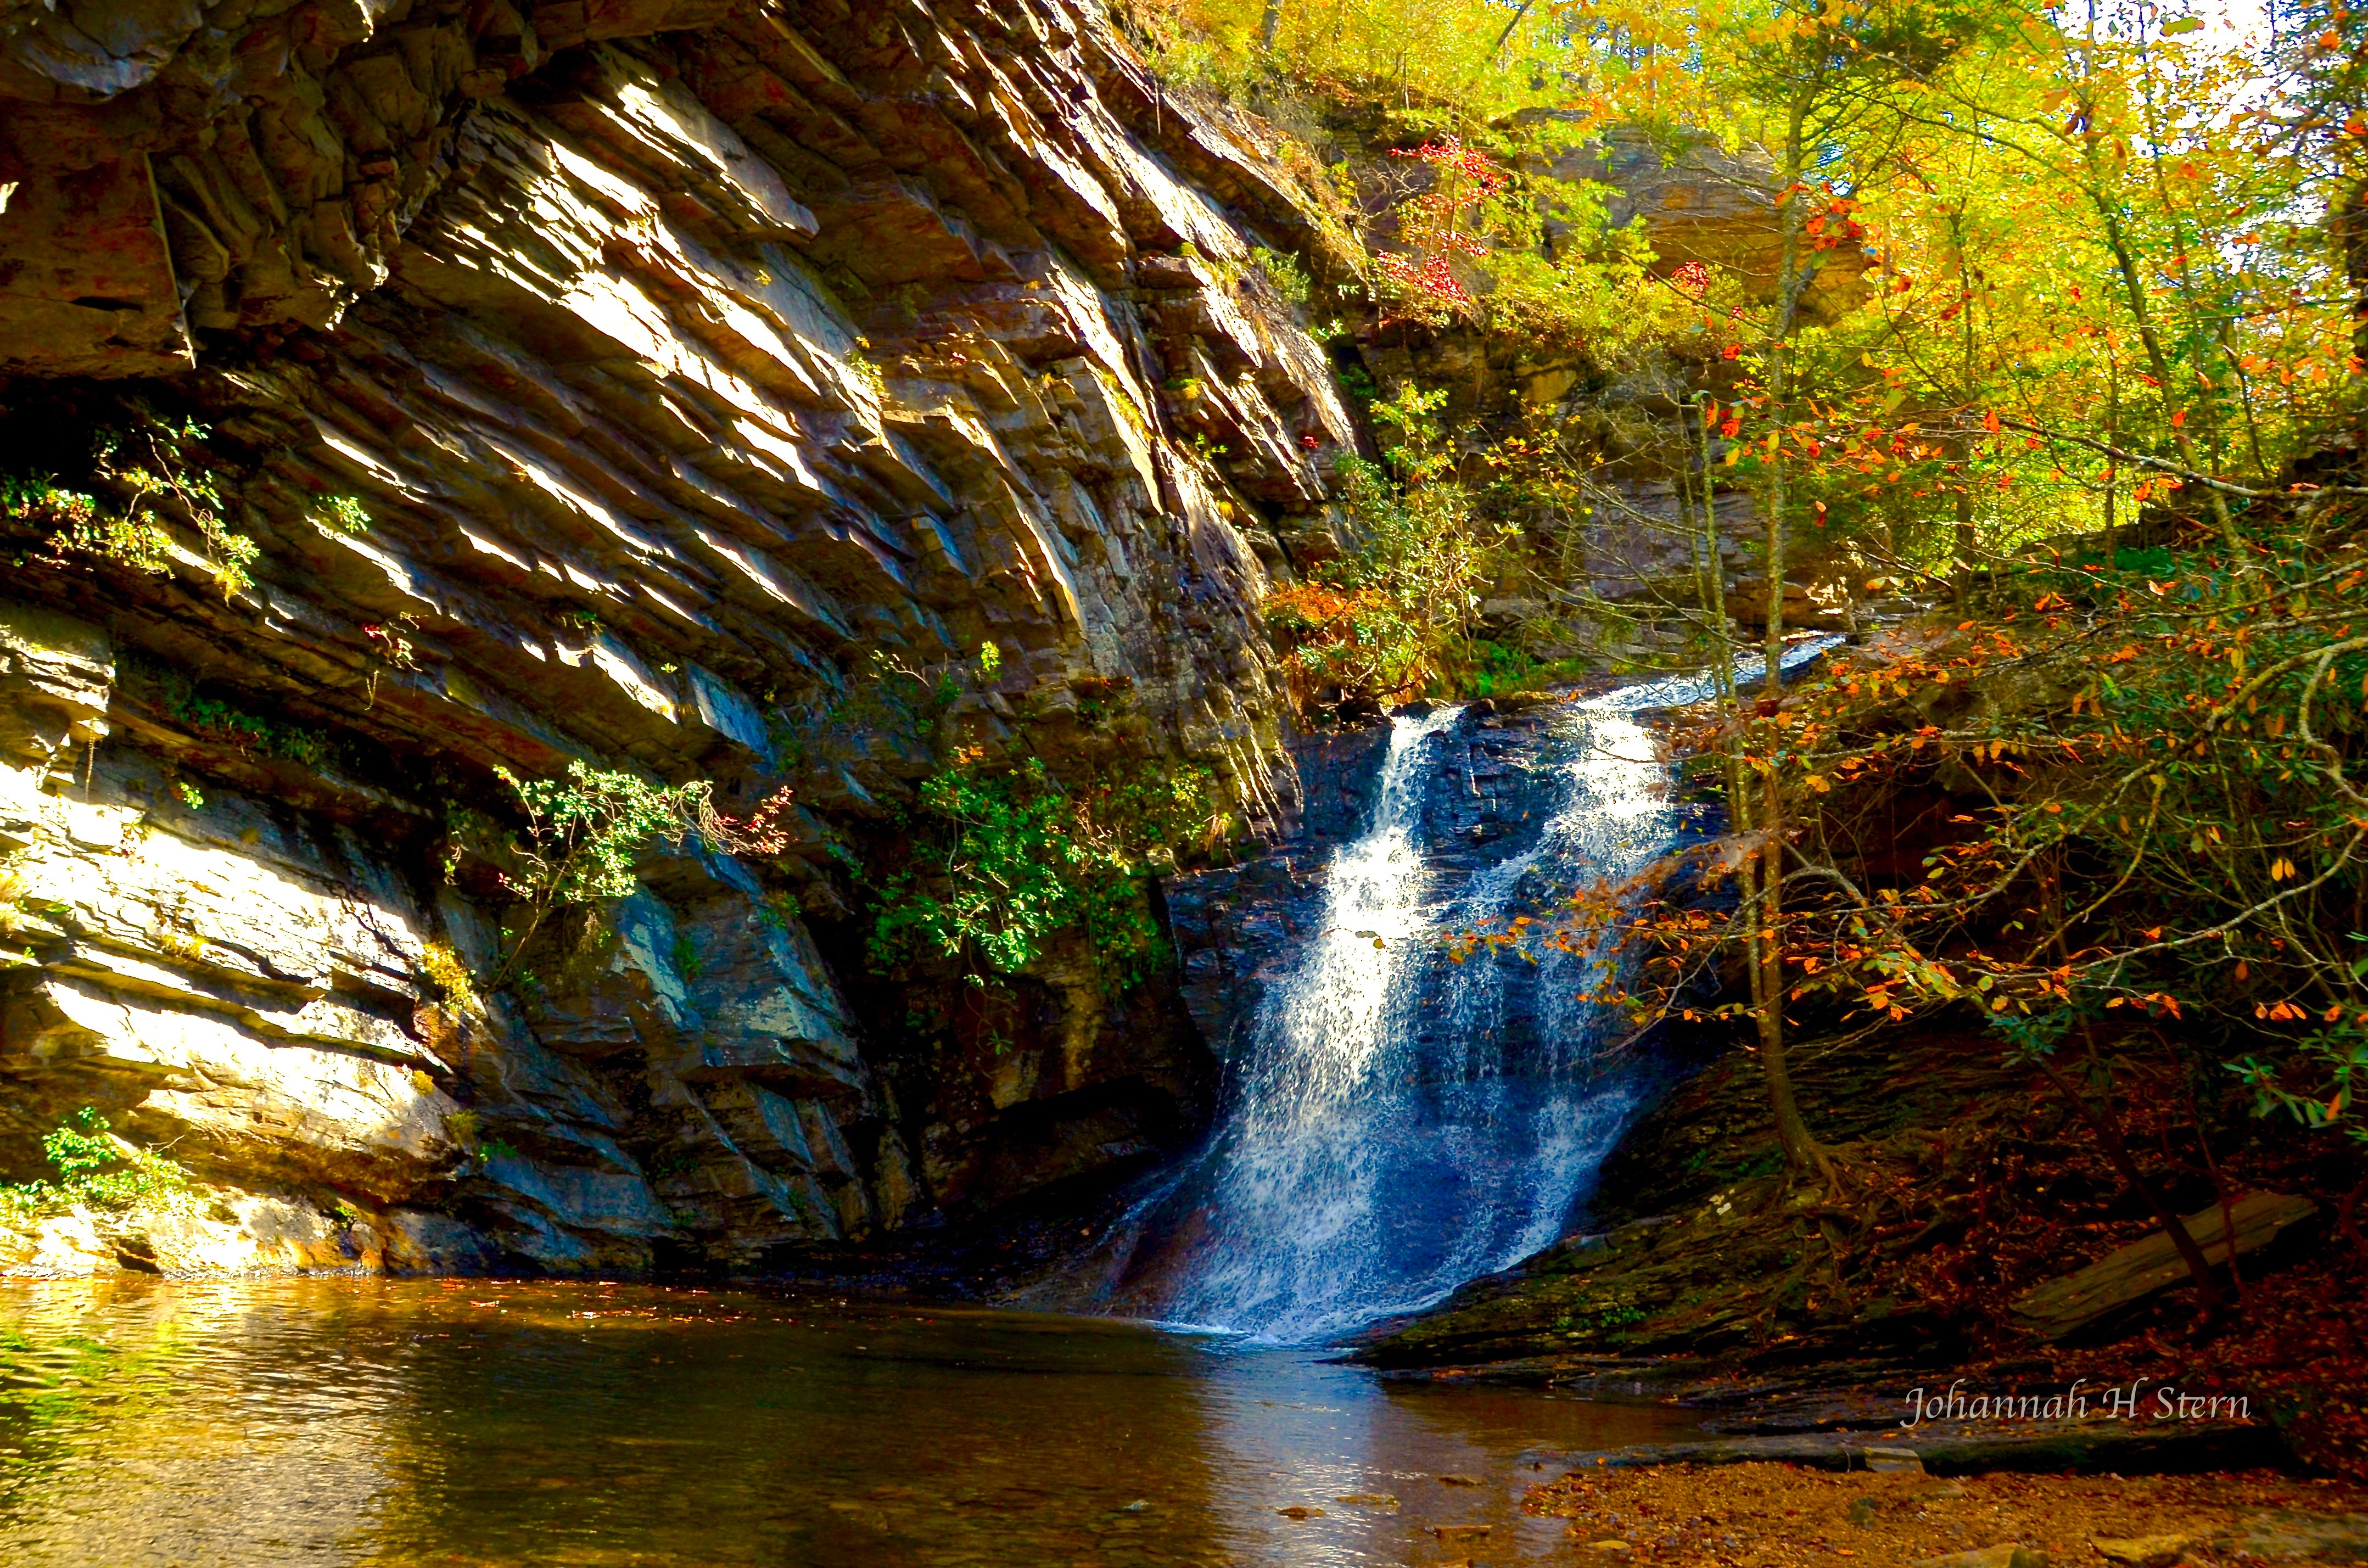 Lower Cascade Fall in Hanging Rock State Park. Photo by Johannah H. Stern.